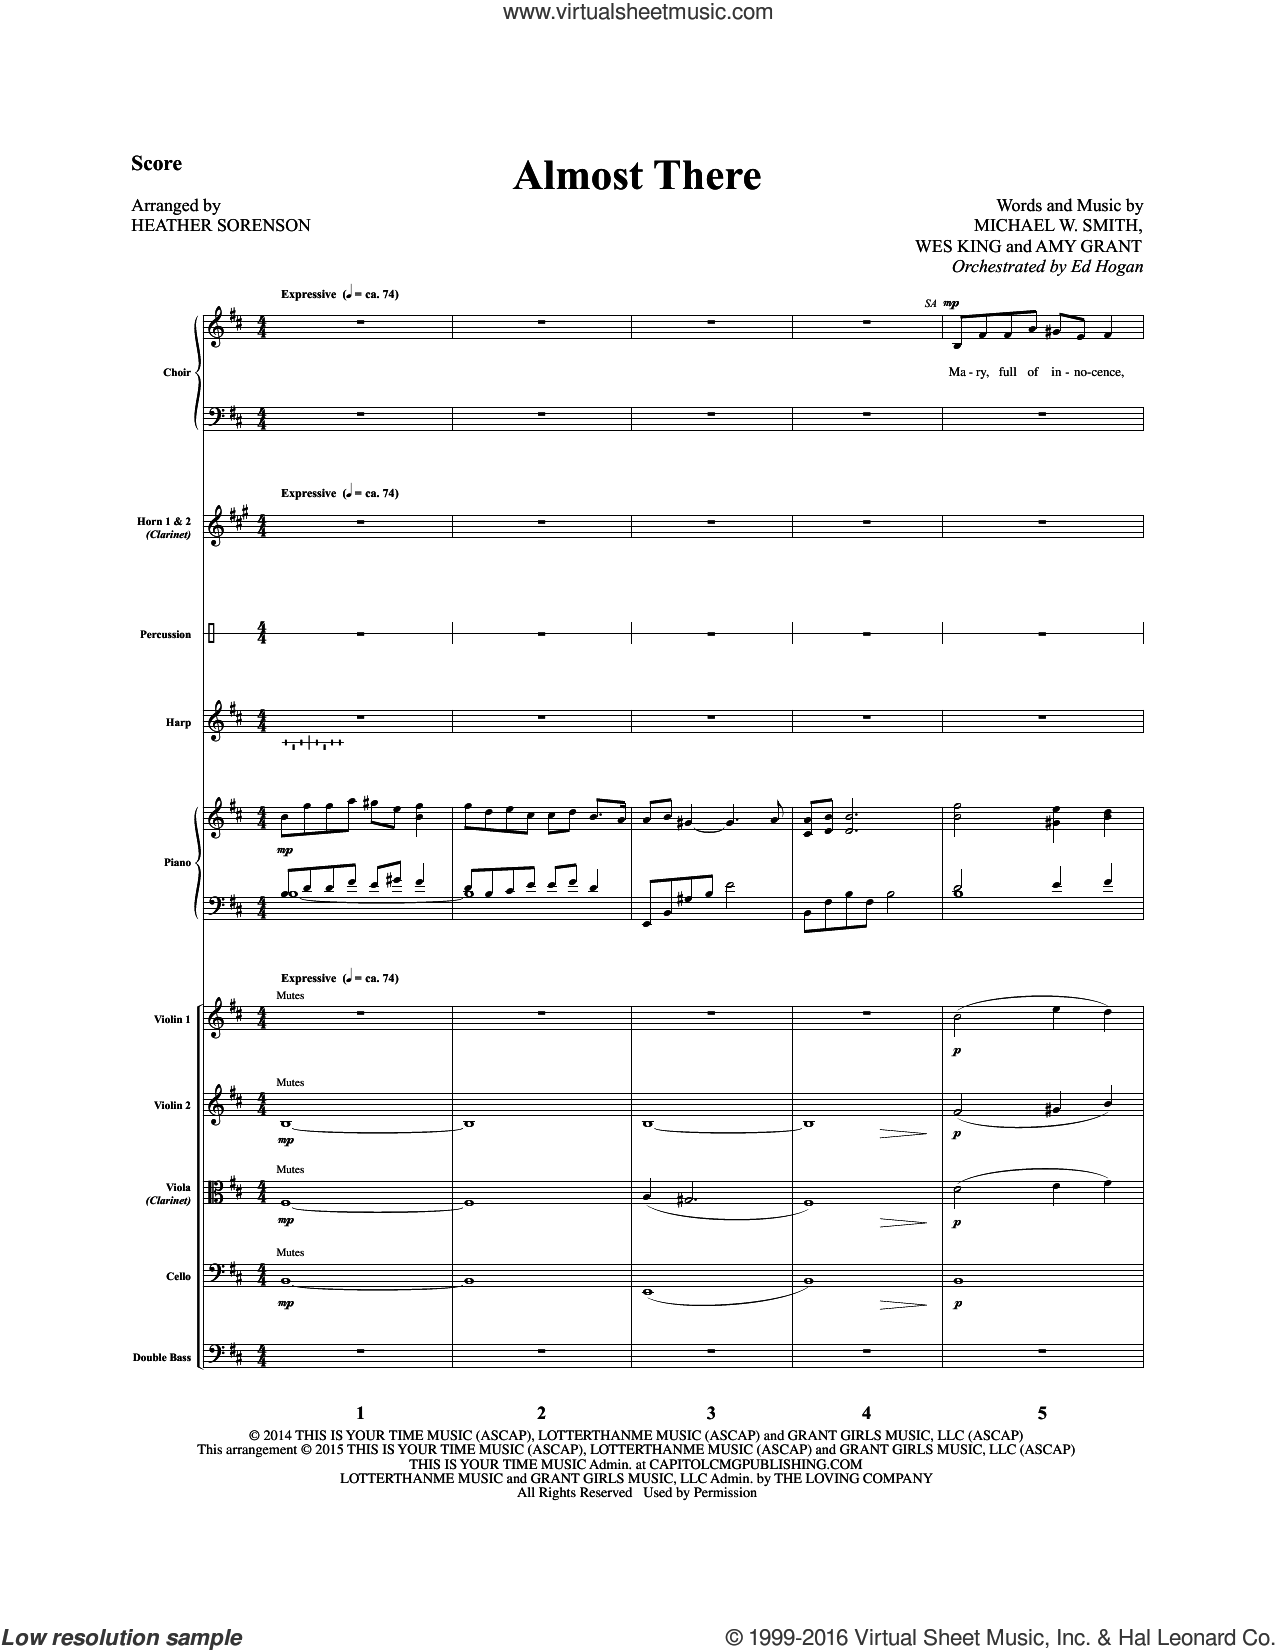 Almost There (COMPLETE) sheet music for orchestra by Michael W. Smith, Heather Sorenson, Amy Grant and Wes King, intermediate. Score Image Preview.